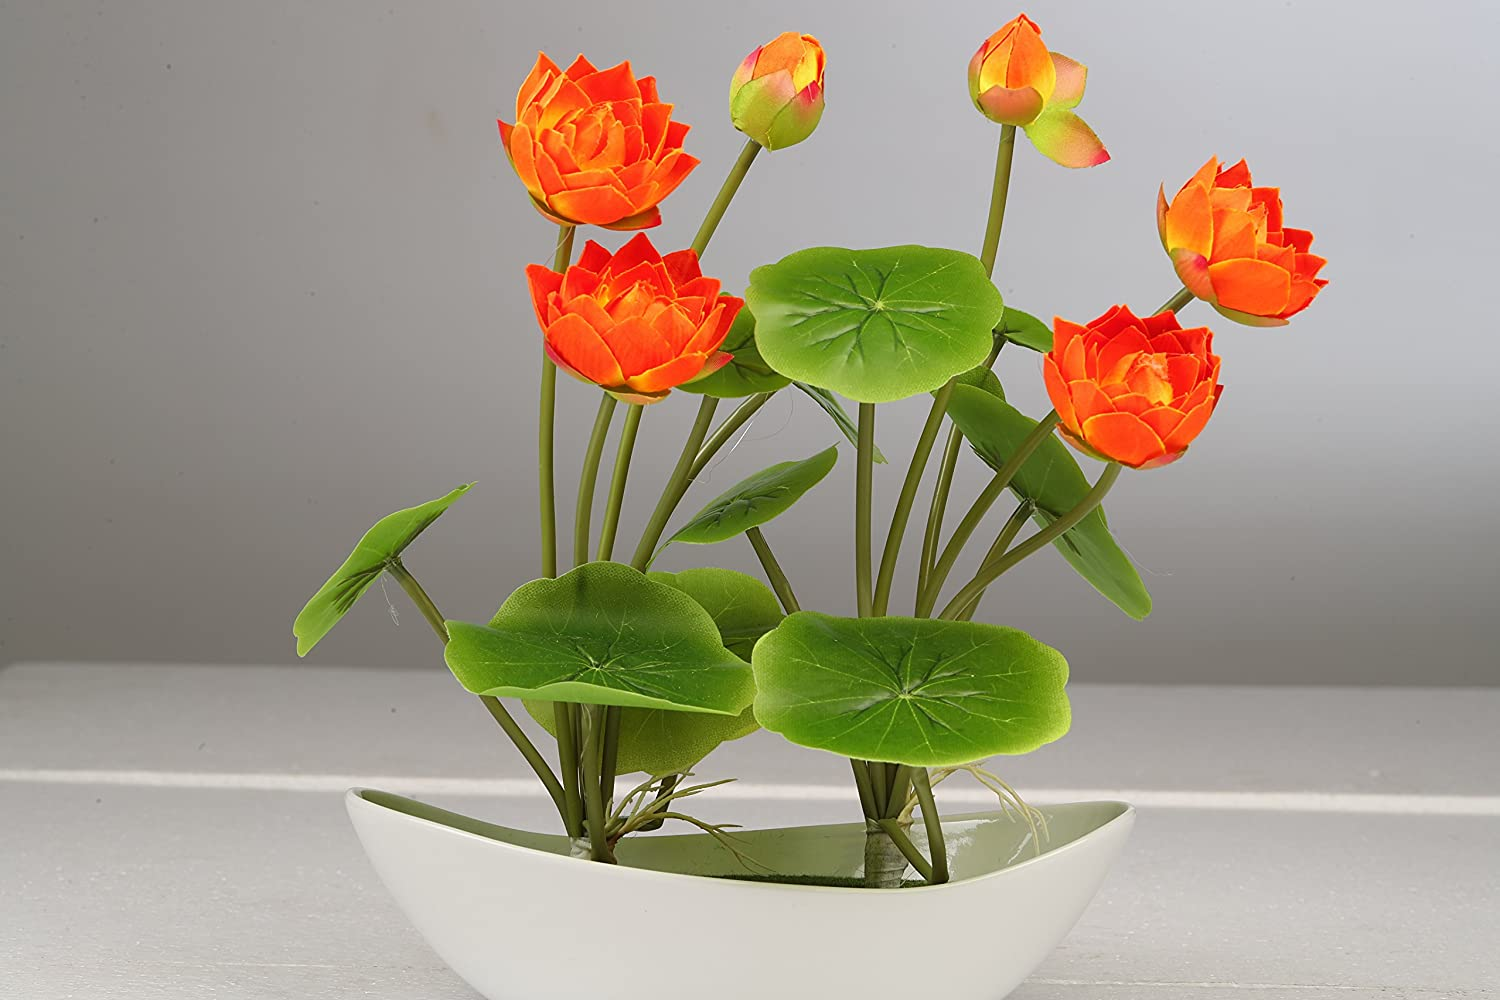 Buy Daytoday Artificial Flowers For Decoration Lotus Flower With